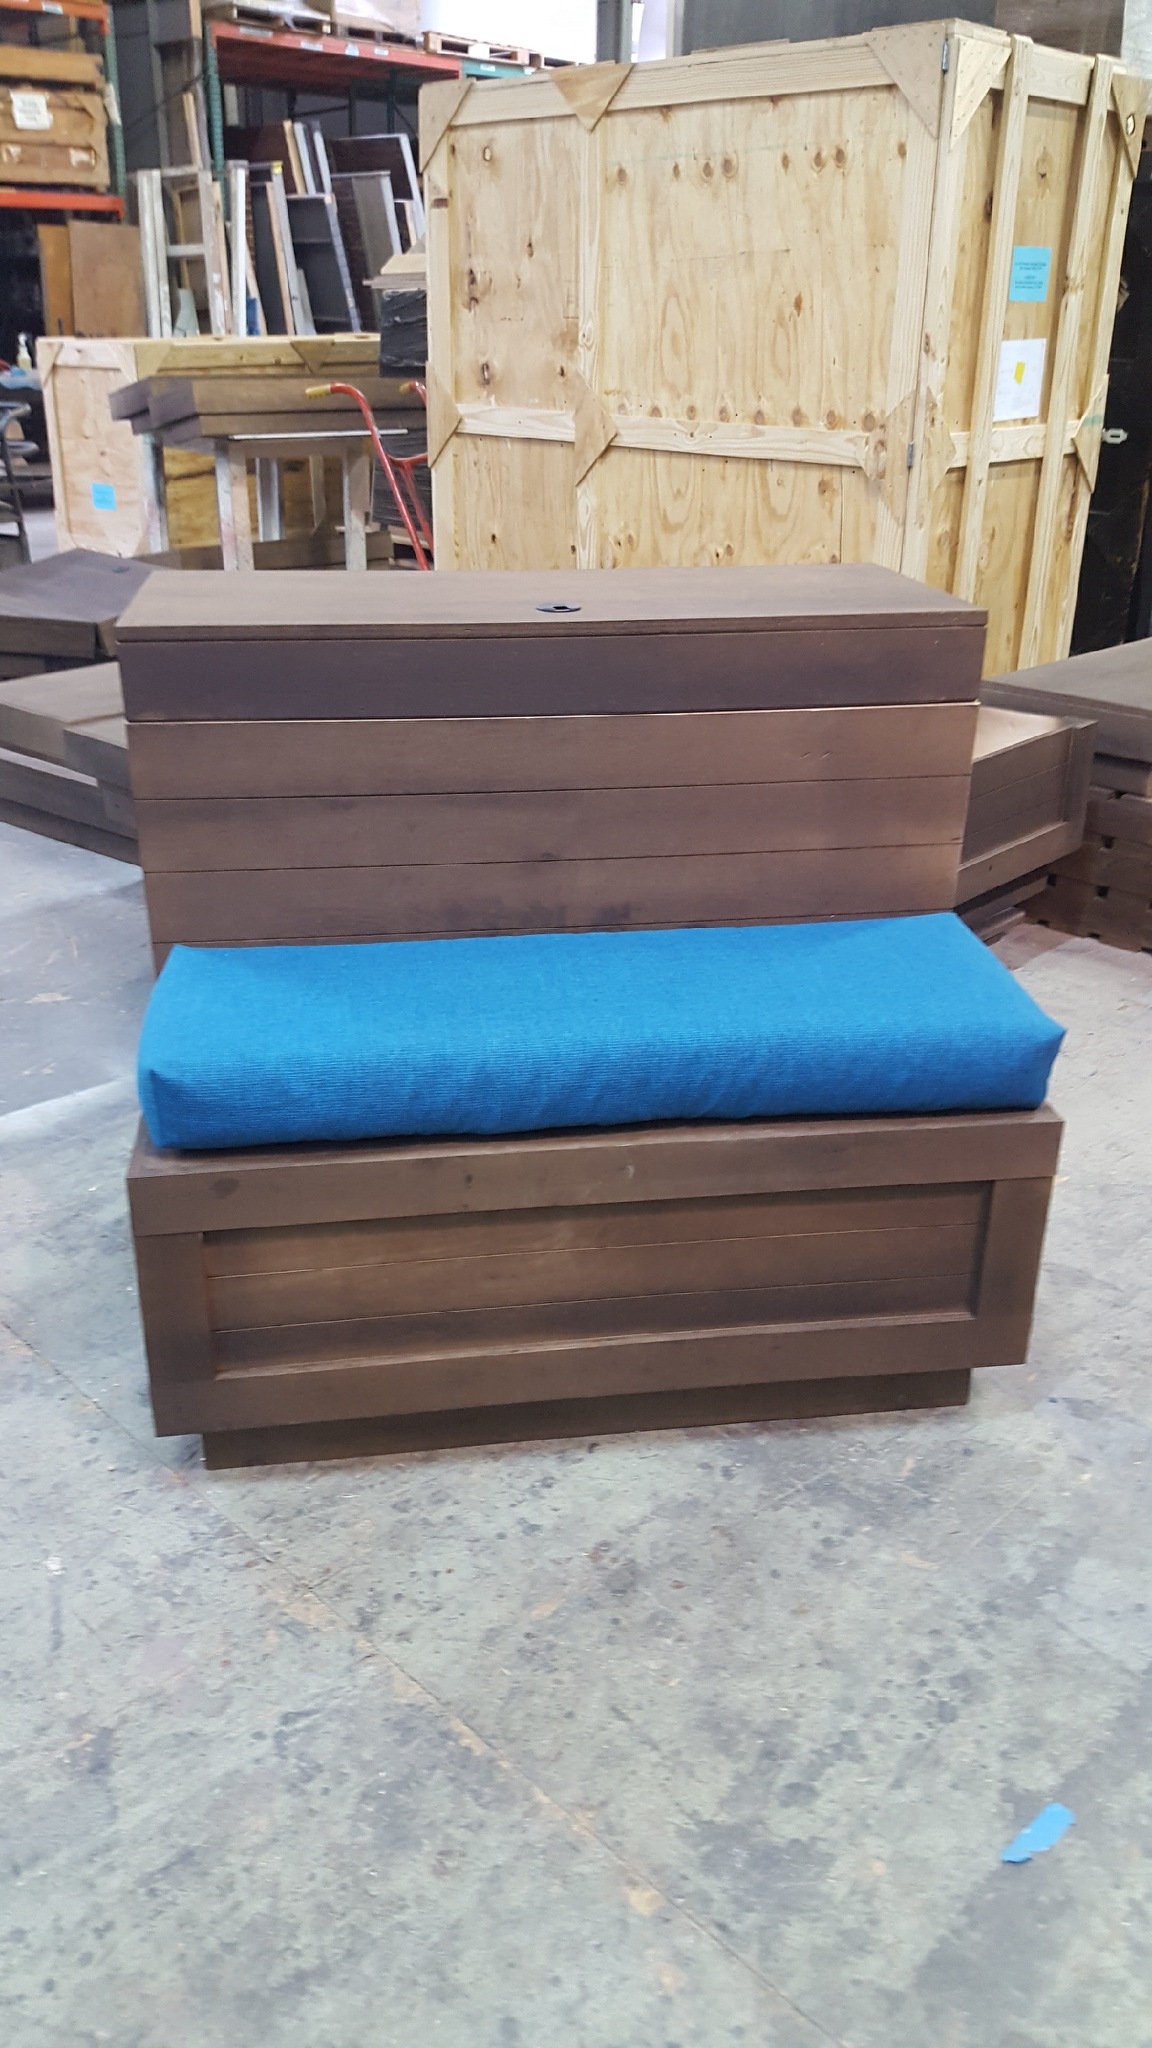 Simple blue cushions for booth display.